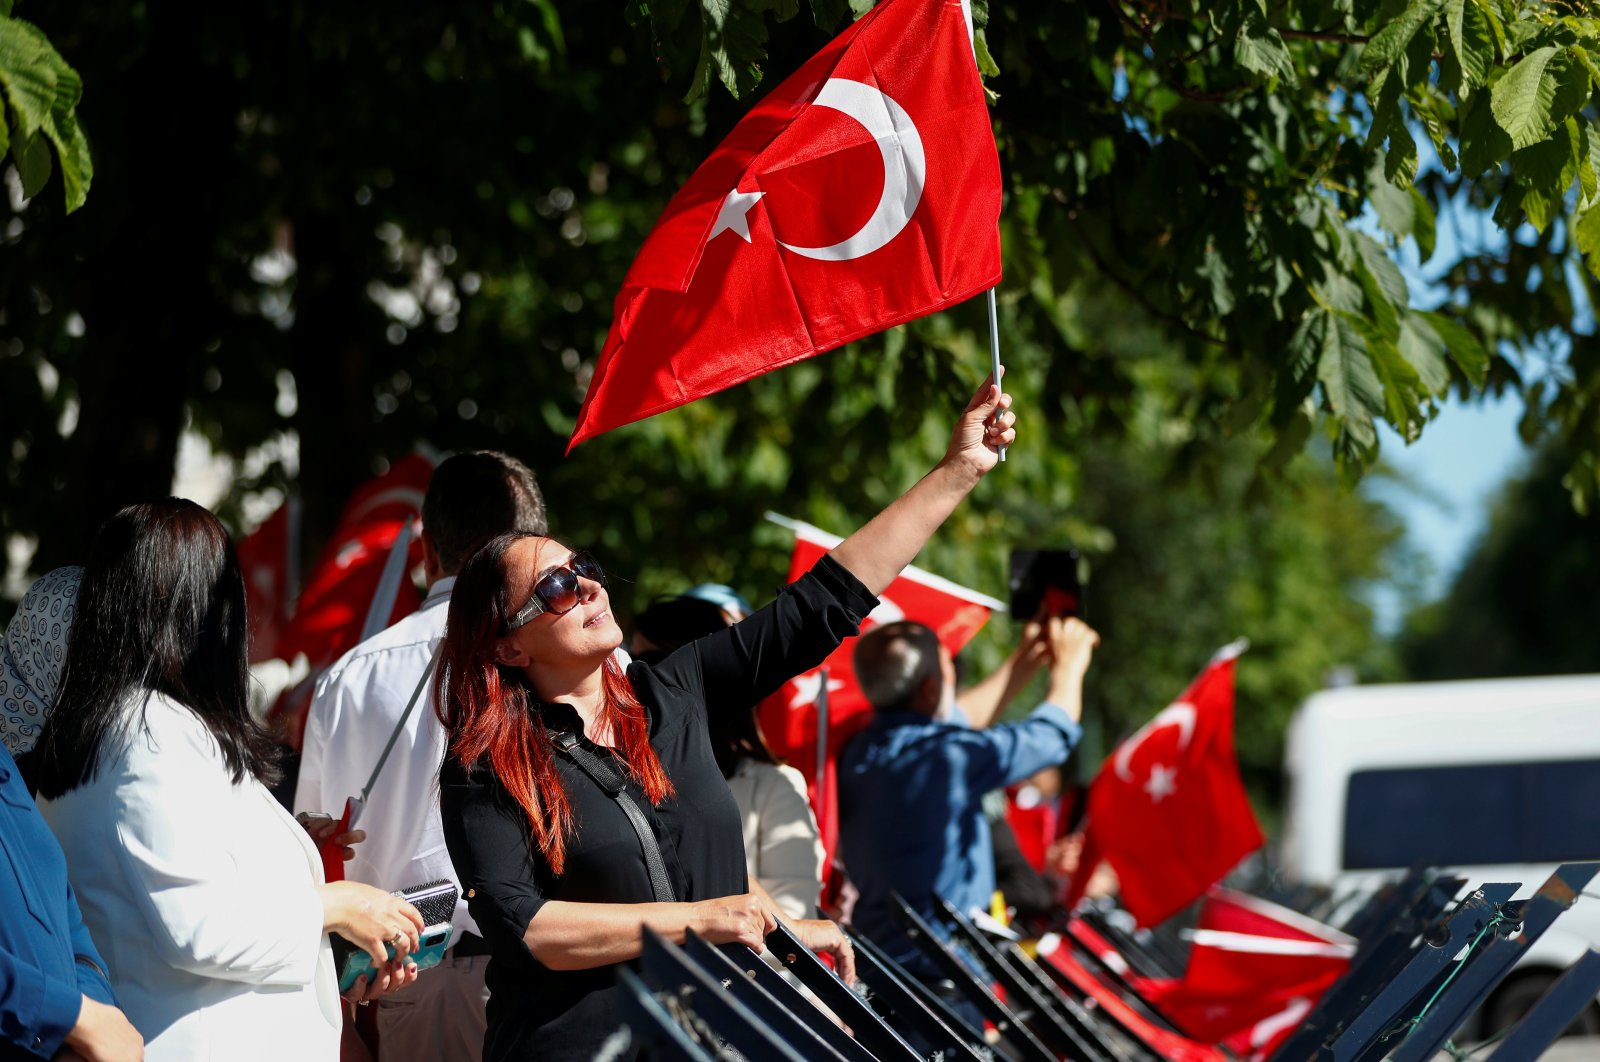 A supporter of President Recep Tayyip Erdoğan holds a flag while waiting in front of his hotel in Brussels, Belgium, June 13, 2021. (Reuters File Photo)